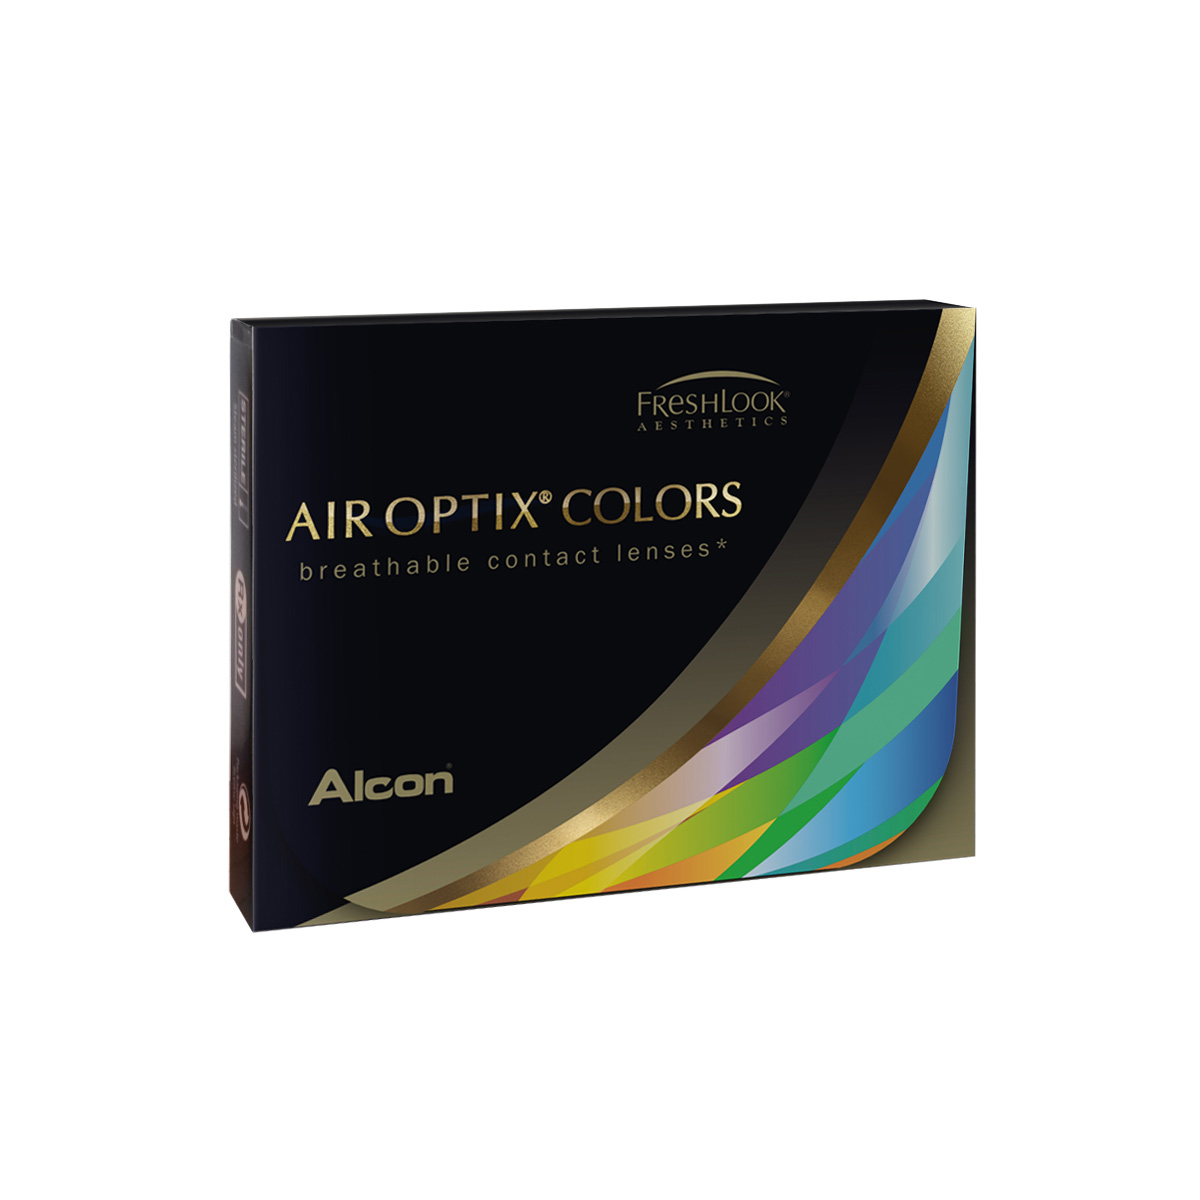 Air Optix Colors 2 lenses